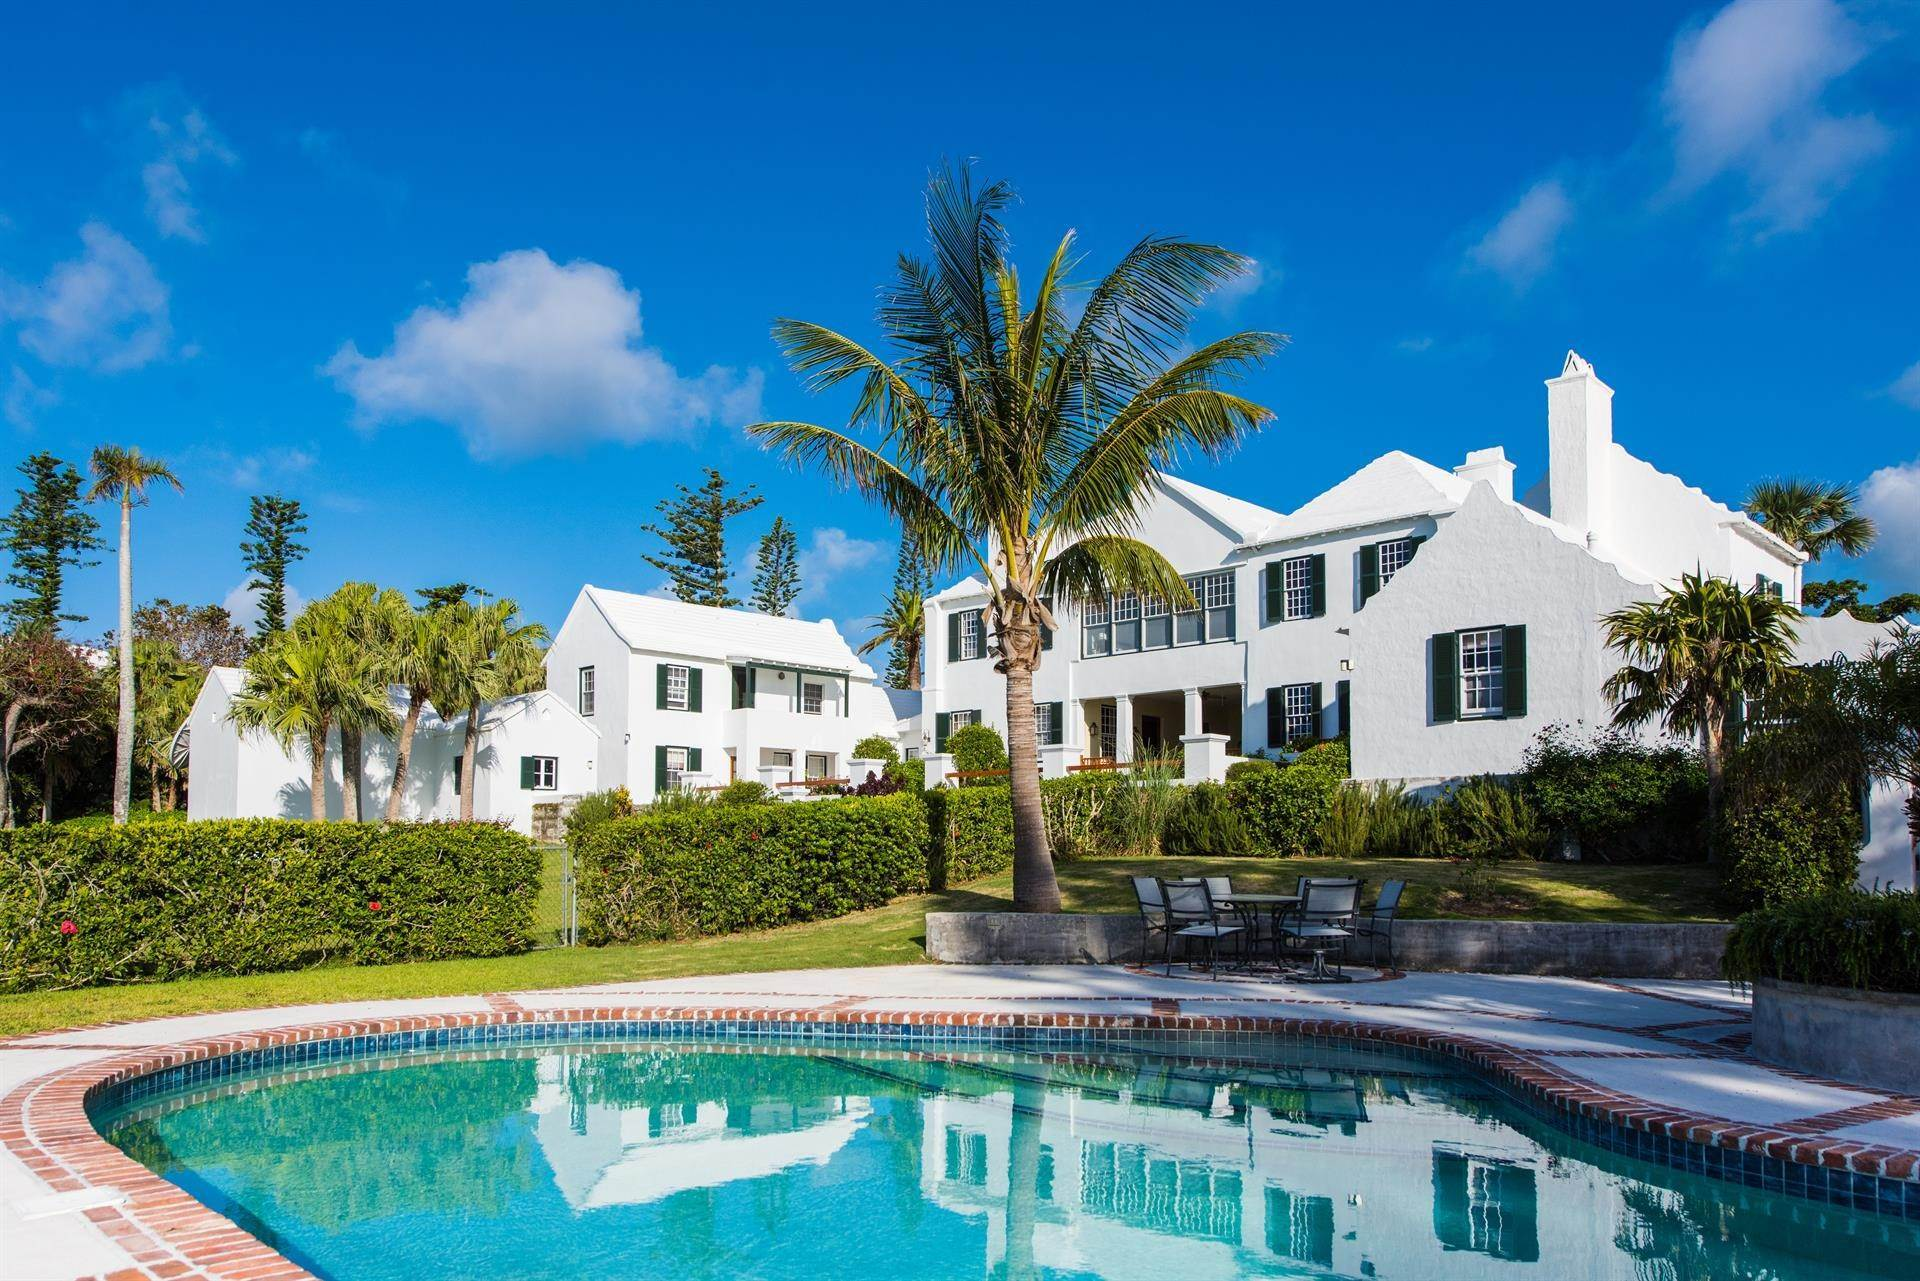 2. Propriedade para Venda às Bellevue Estate At Grape Bay Beach Bellevue Estate At Grape Bay Beach, 6 Bellevue Drive,Bermuda – Sinclair Realty